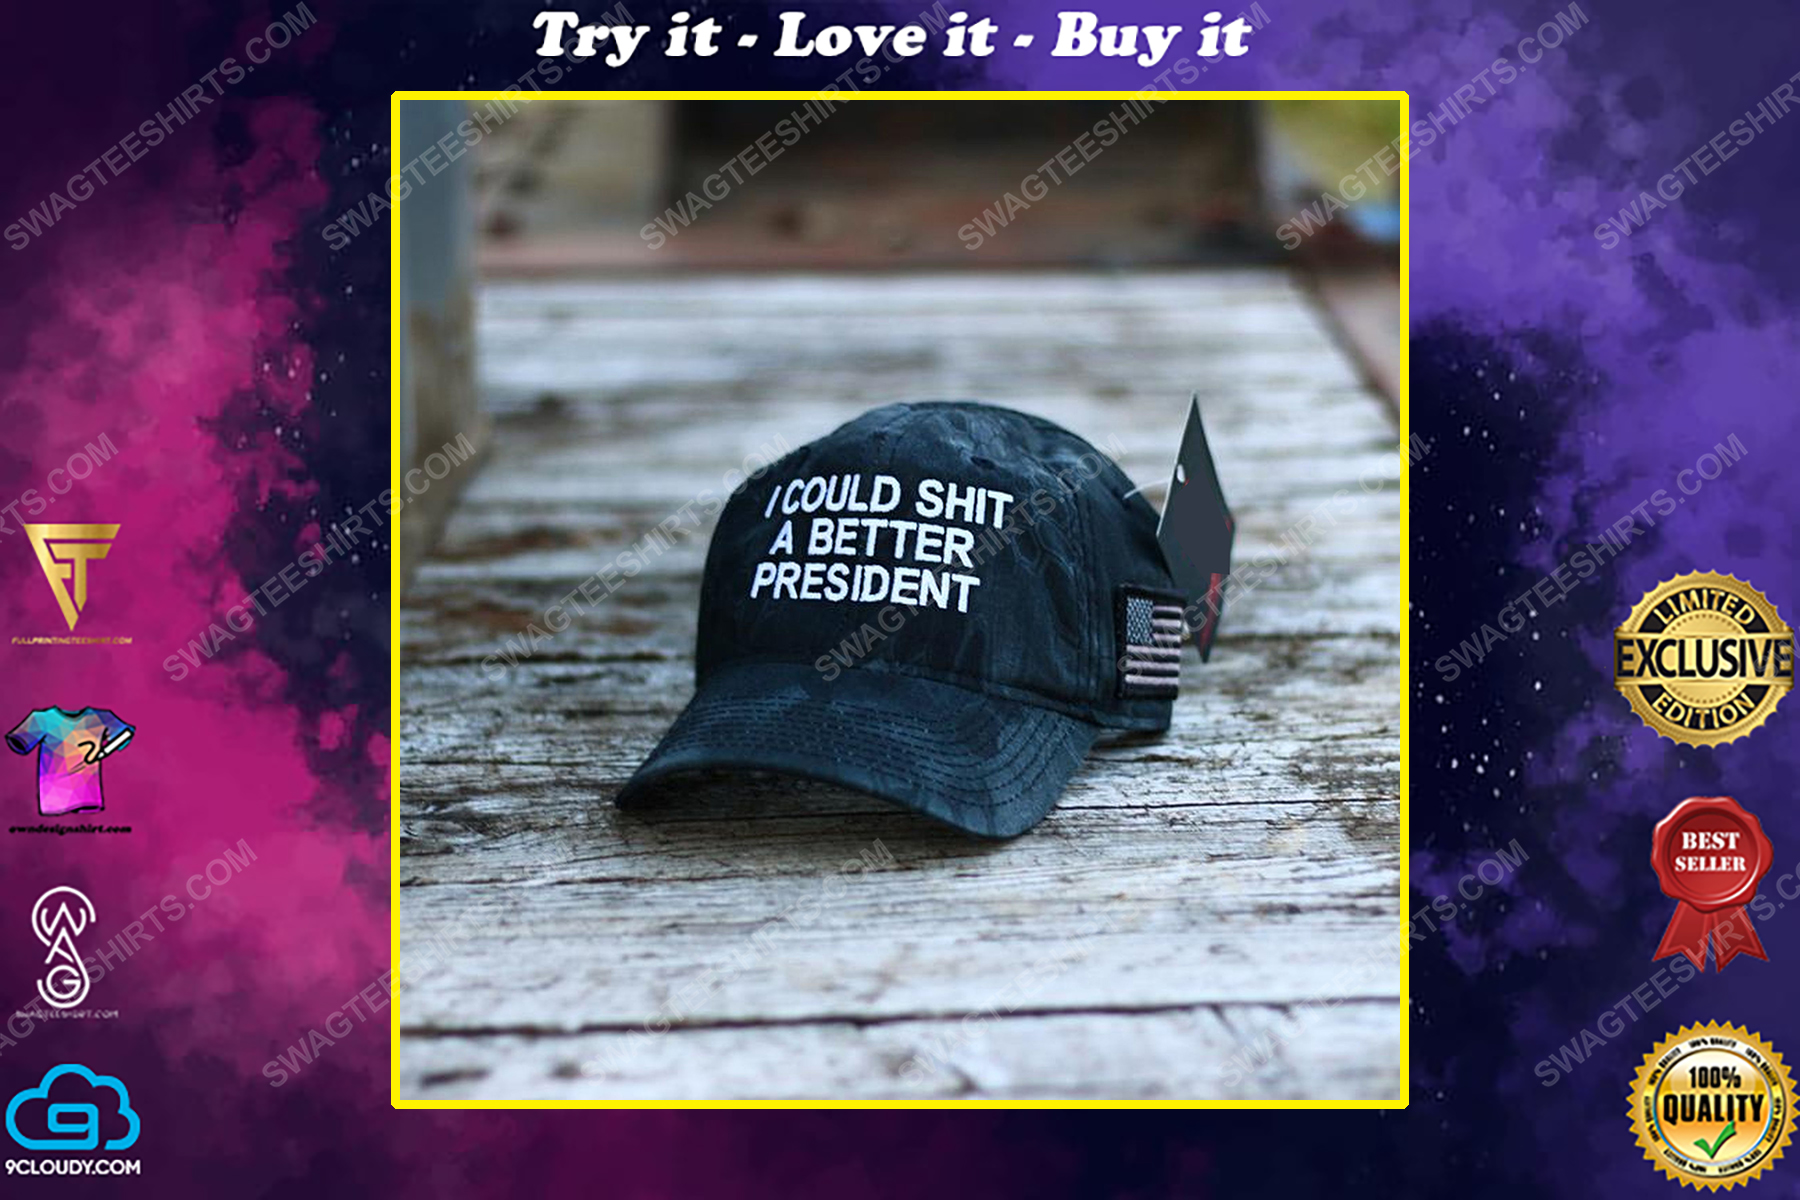 I could shit a better president full print classic hat